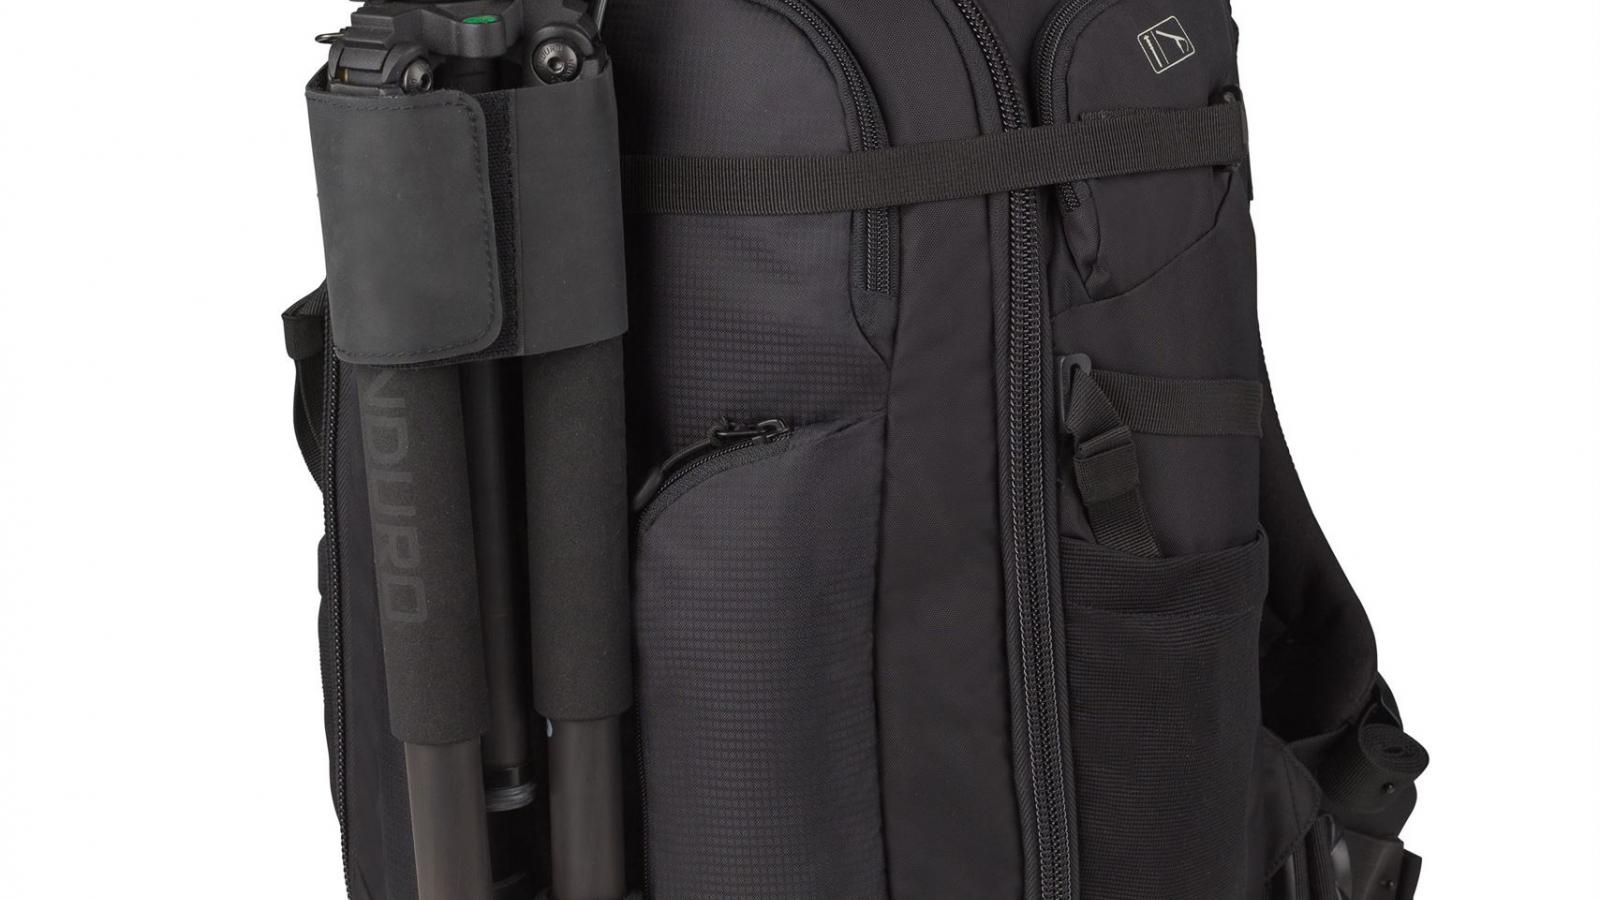 FITS A MONOPOD OR COMPACT TRIPOD. - Safely and securely transport your favorite compact tripod or monopod as you travel.